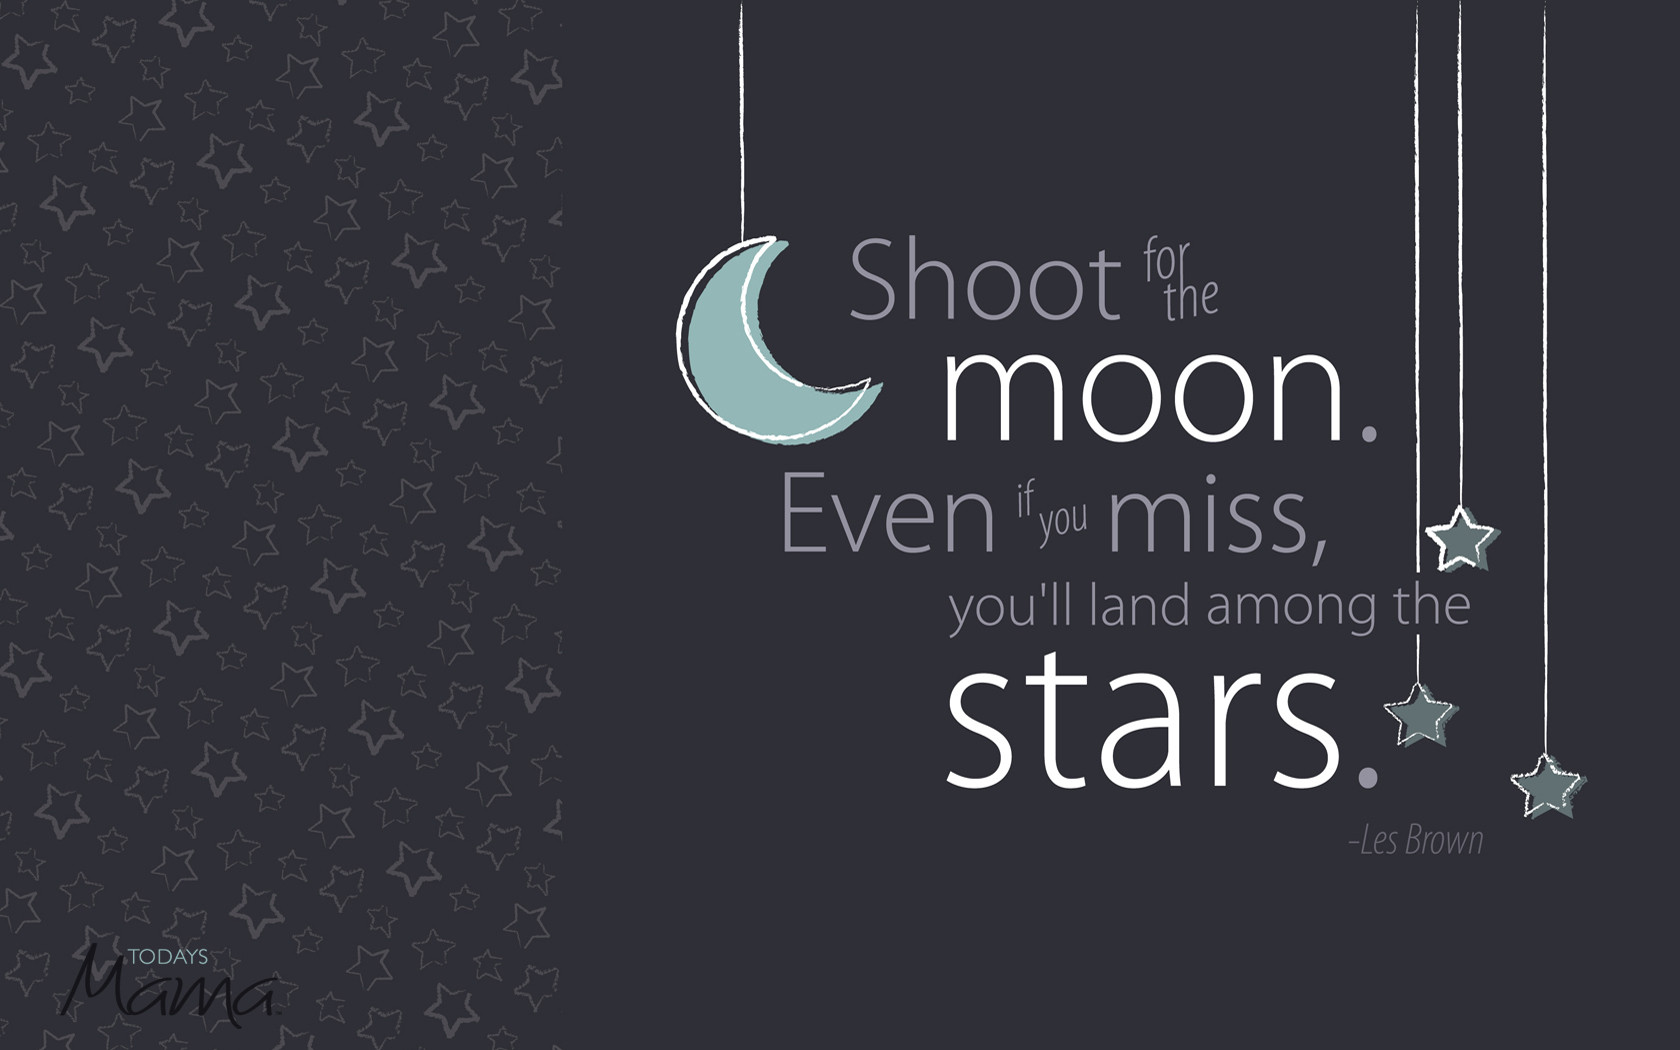 Quotes Wallpaper Hd (53 Wallpapers)